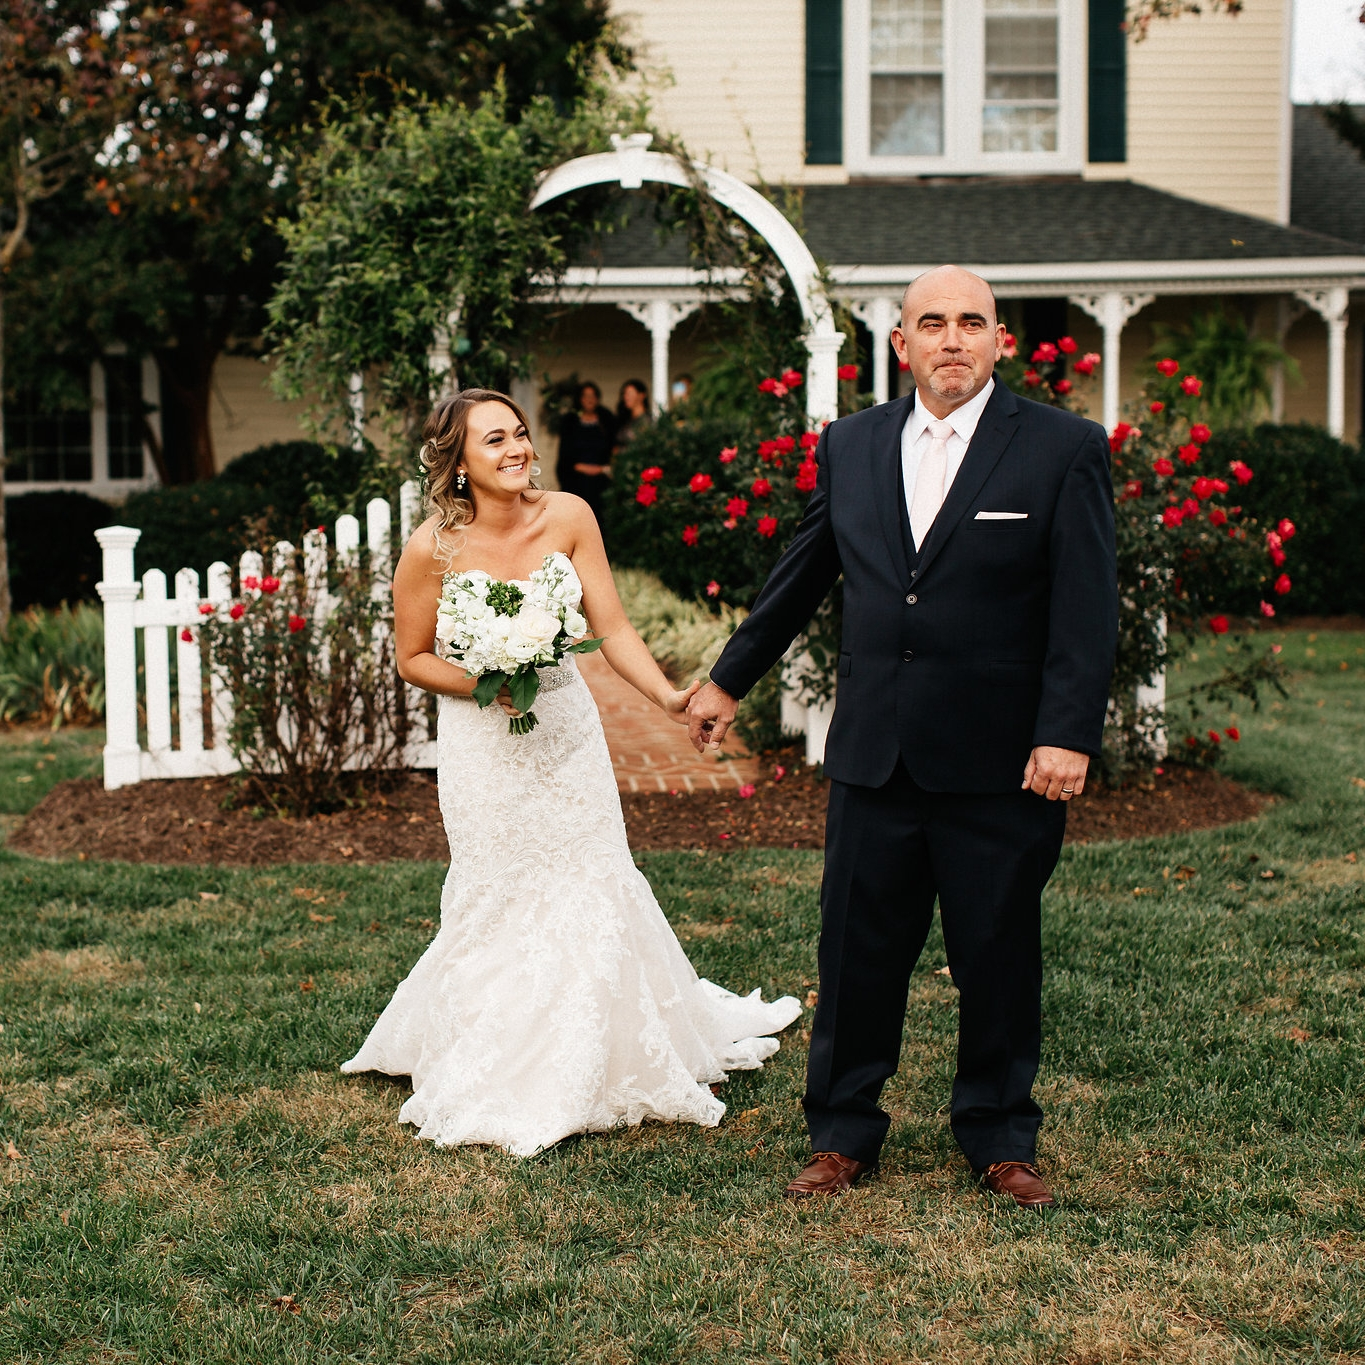 Ashley&NathanMarried2017-11-10at19.26.47PM135.jpg